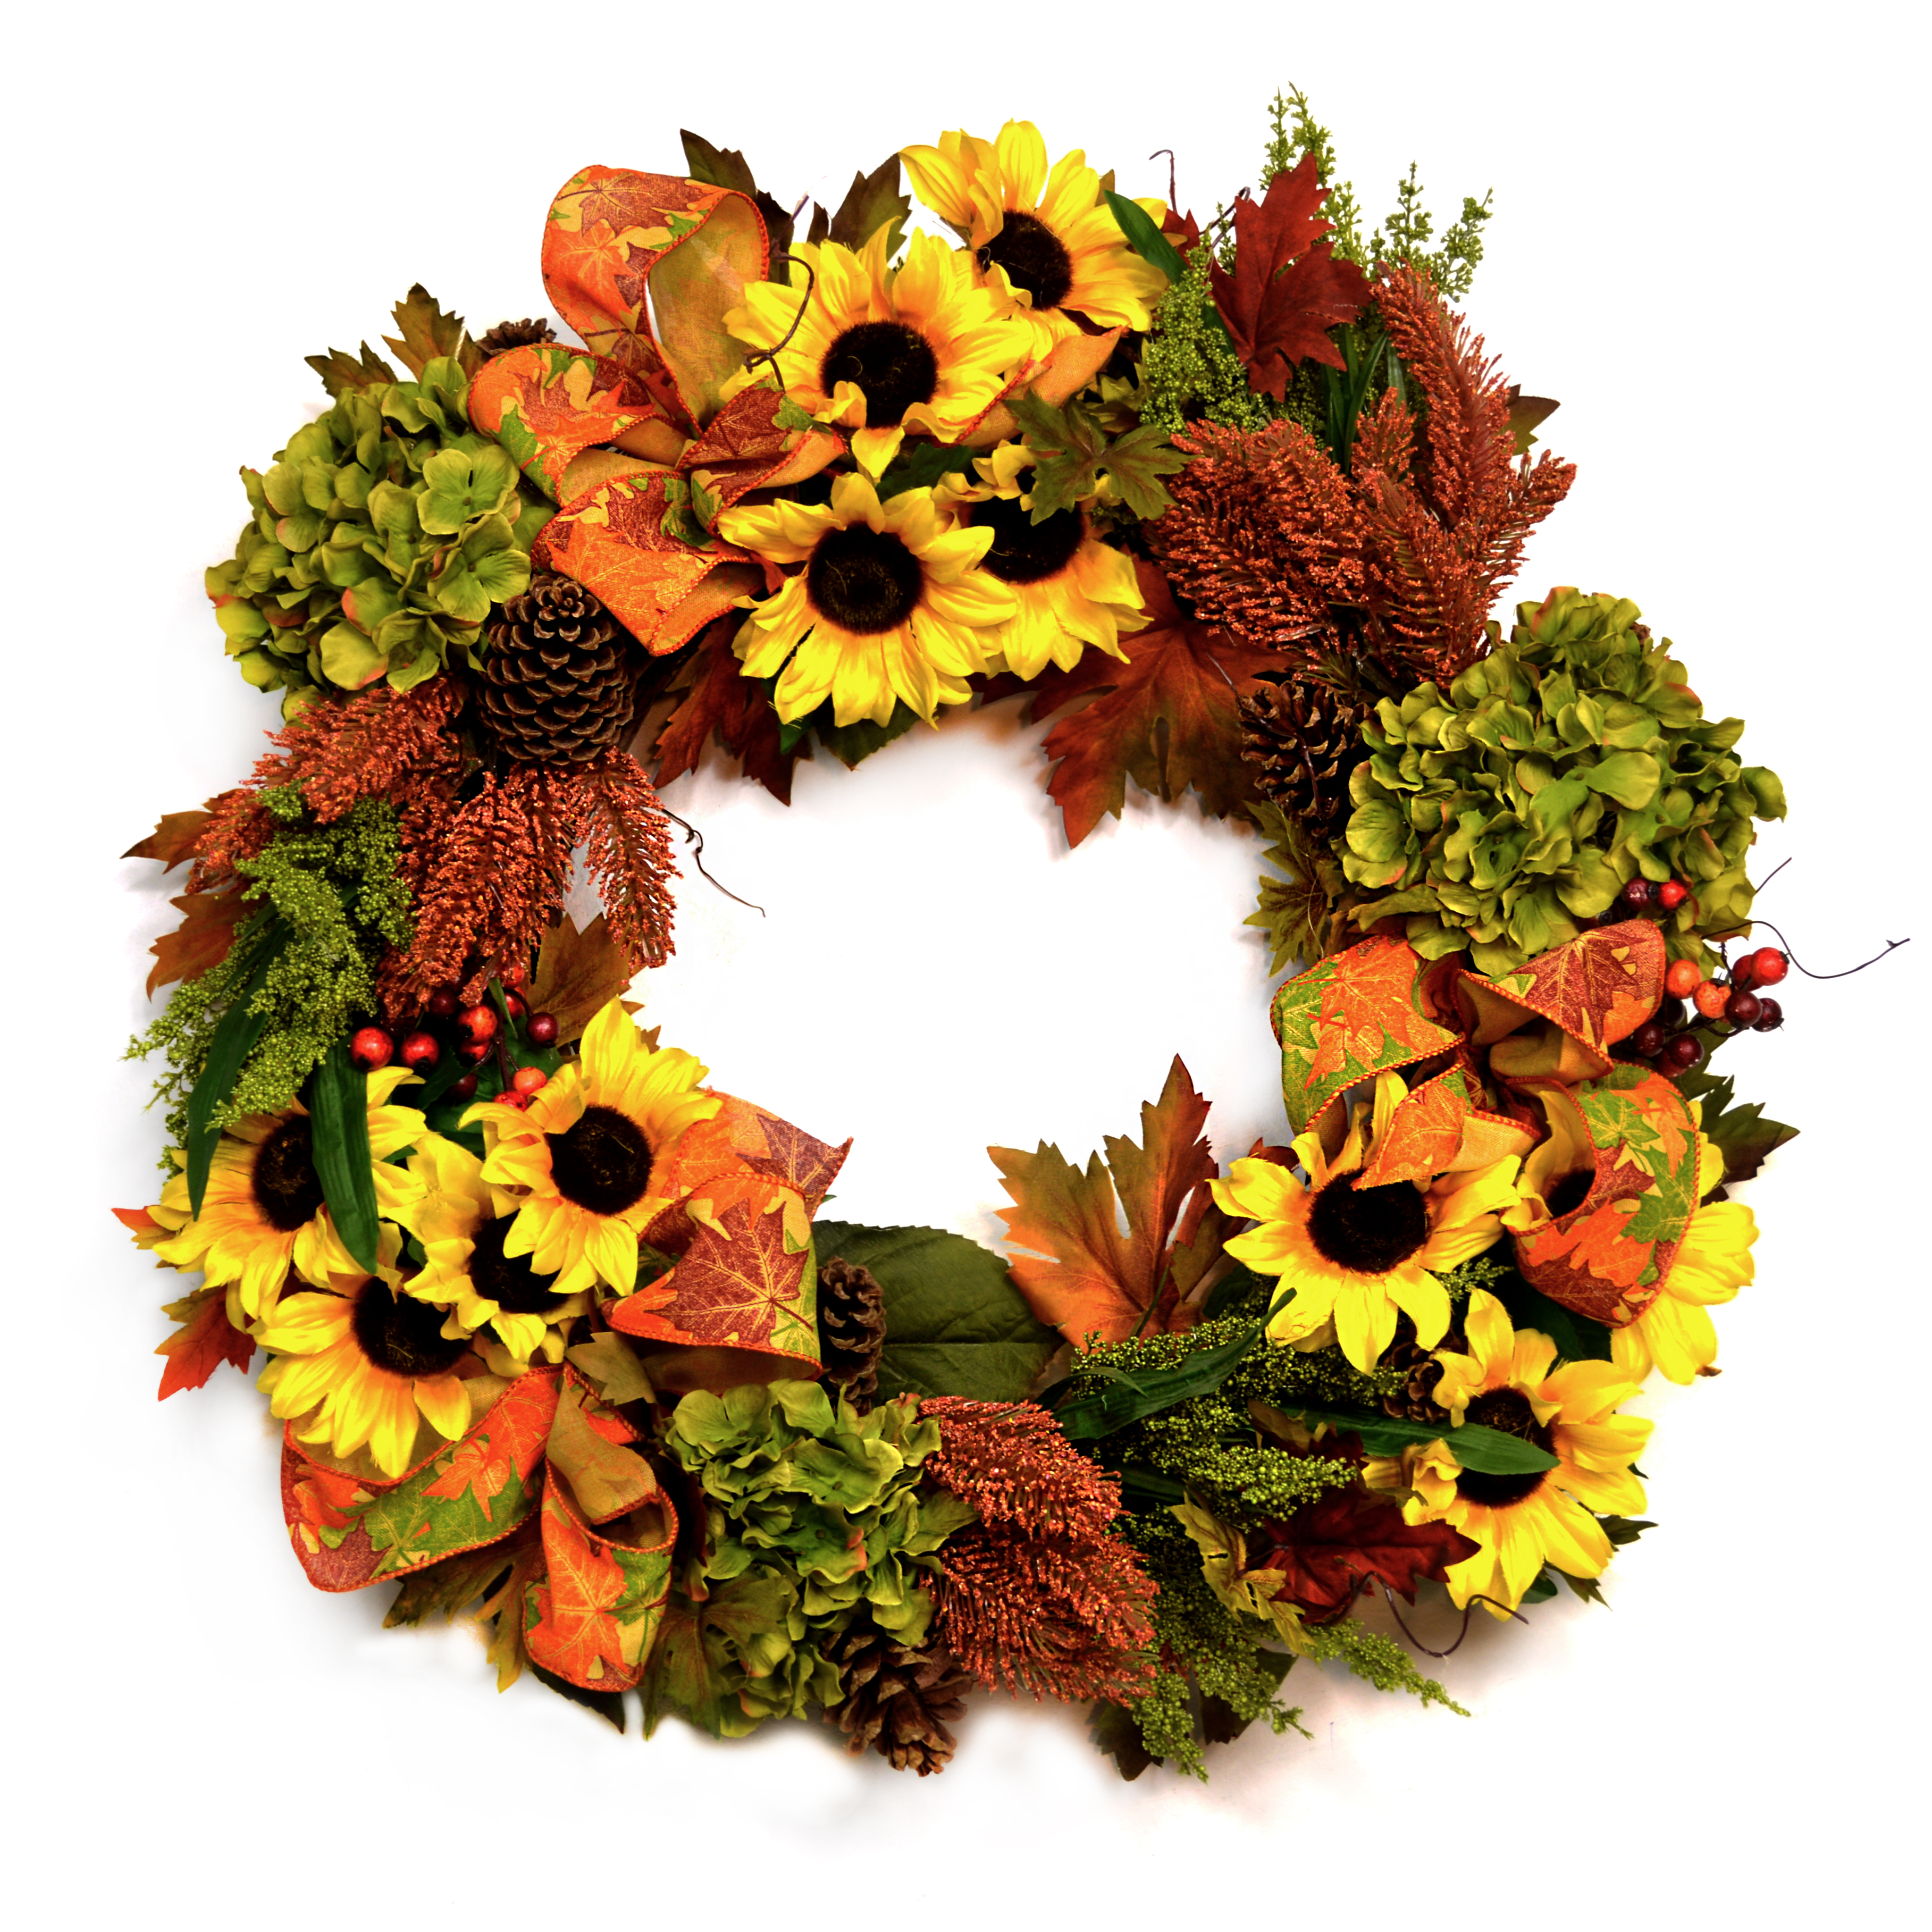 Cdwr591 Sunflower Fall Wreath Creative Displays And Designs Inc